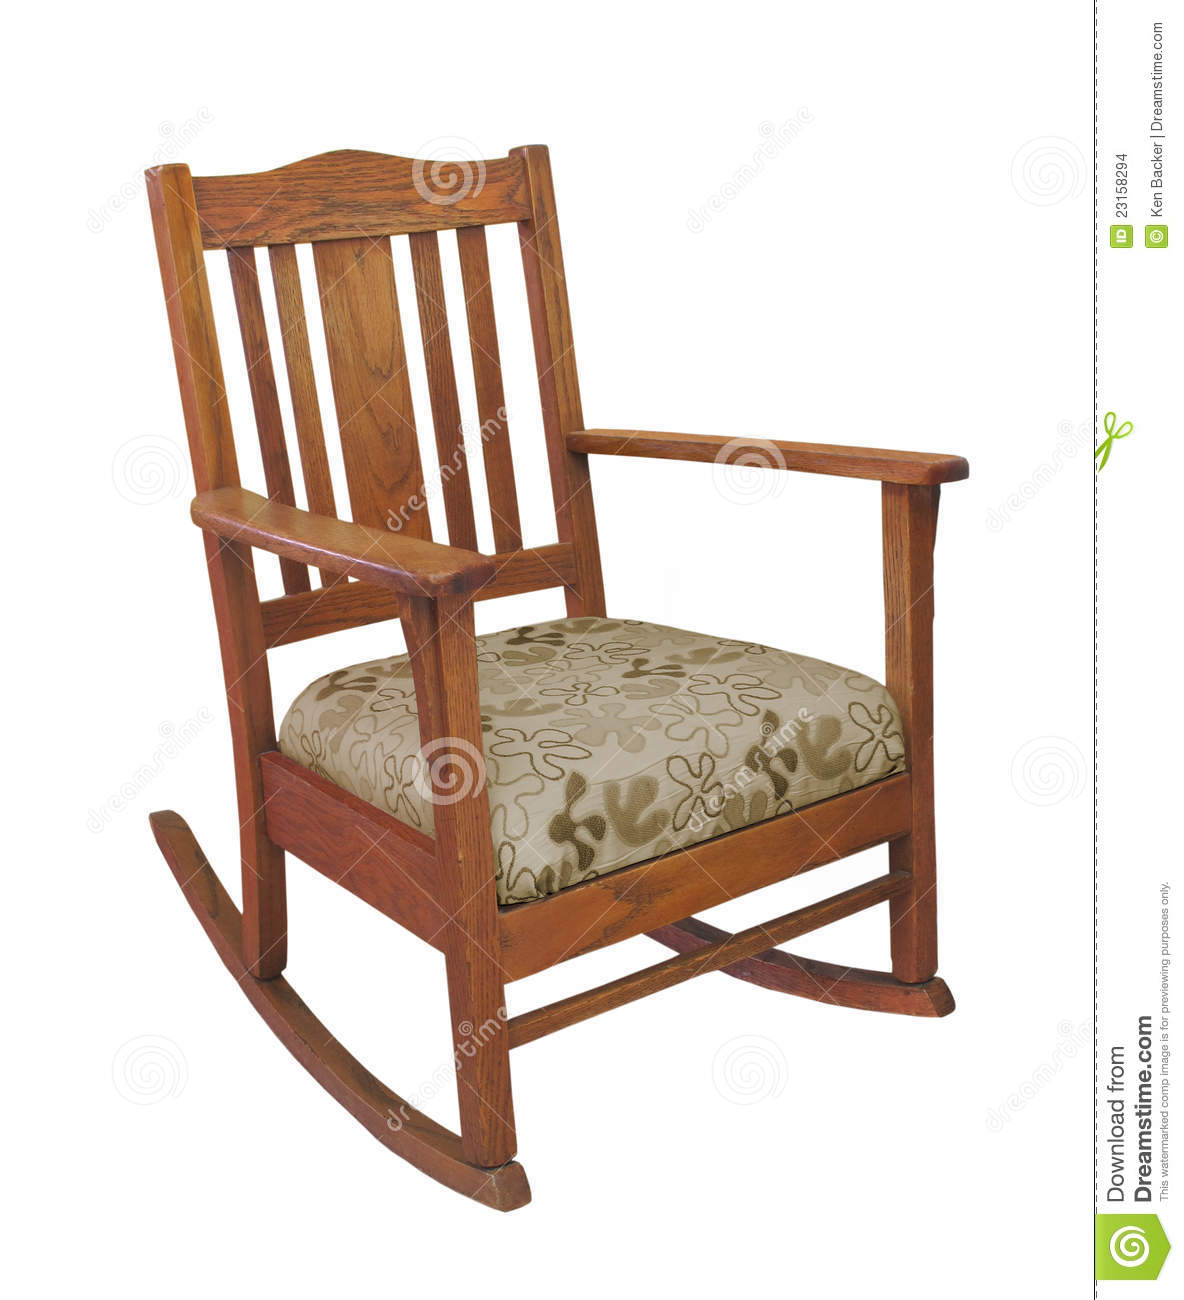 Antique Oak Mission Style Wooden Rocking Chair With Cushion. Isolated . Full resolution‎  portraiture, nominally Width 1184 Height 1300 pixels, portraiture with #86A724.